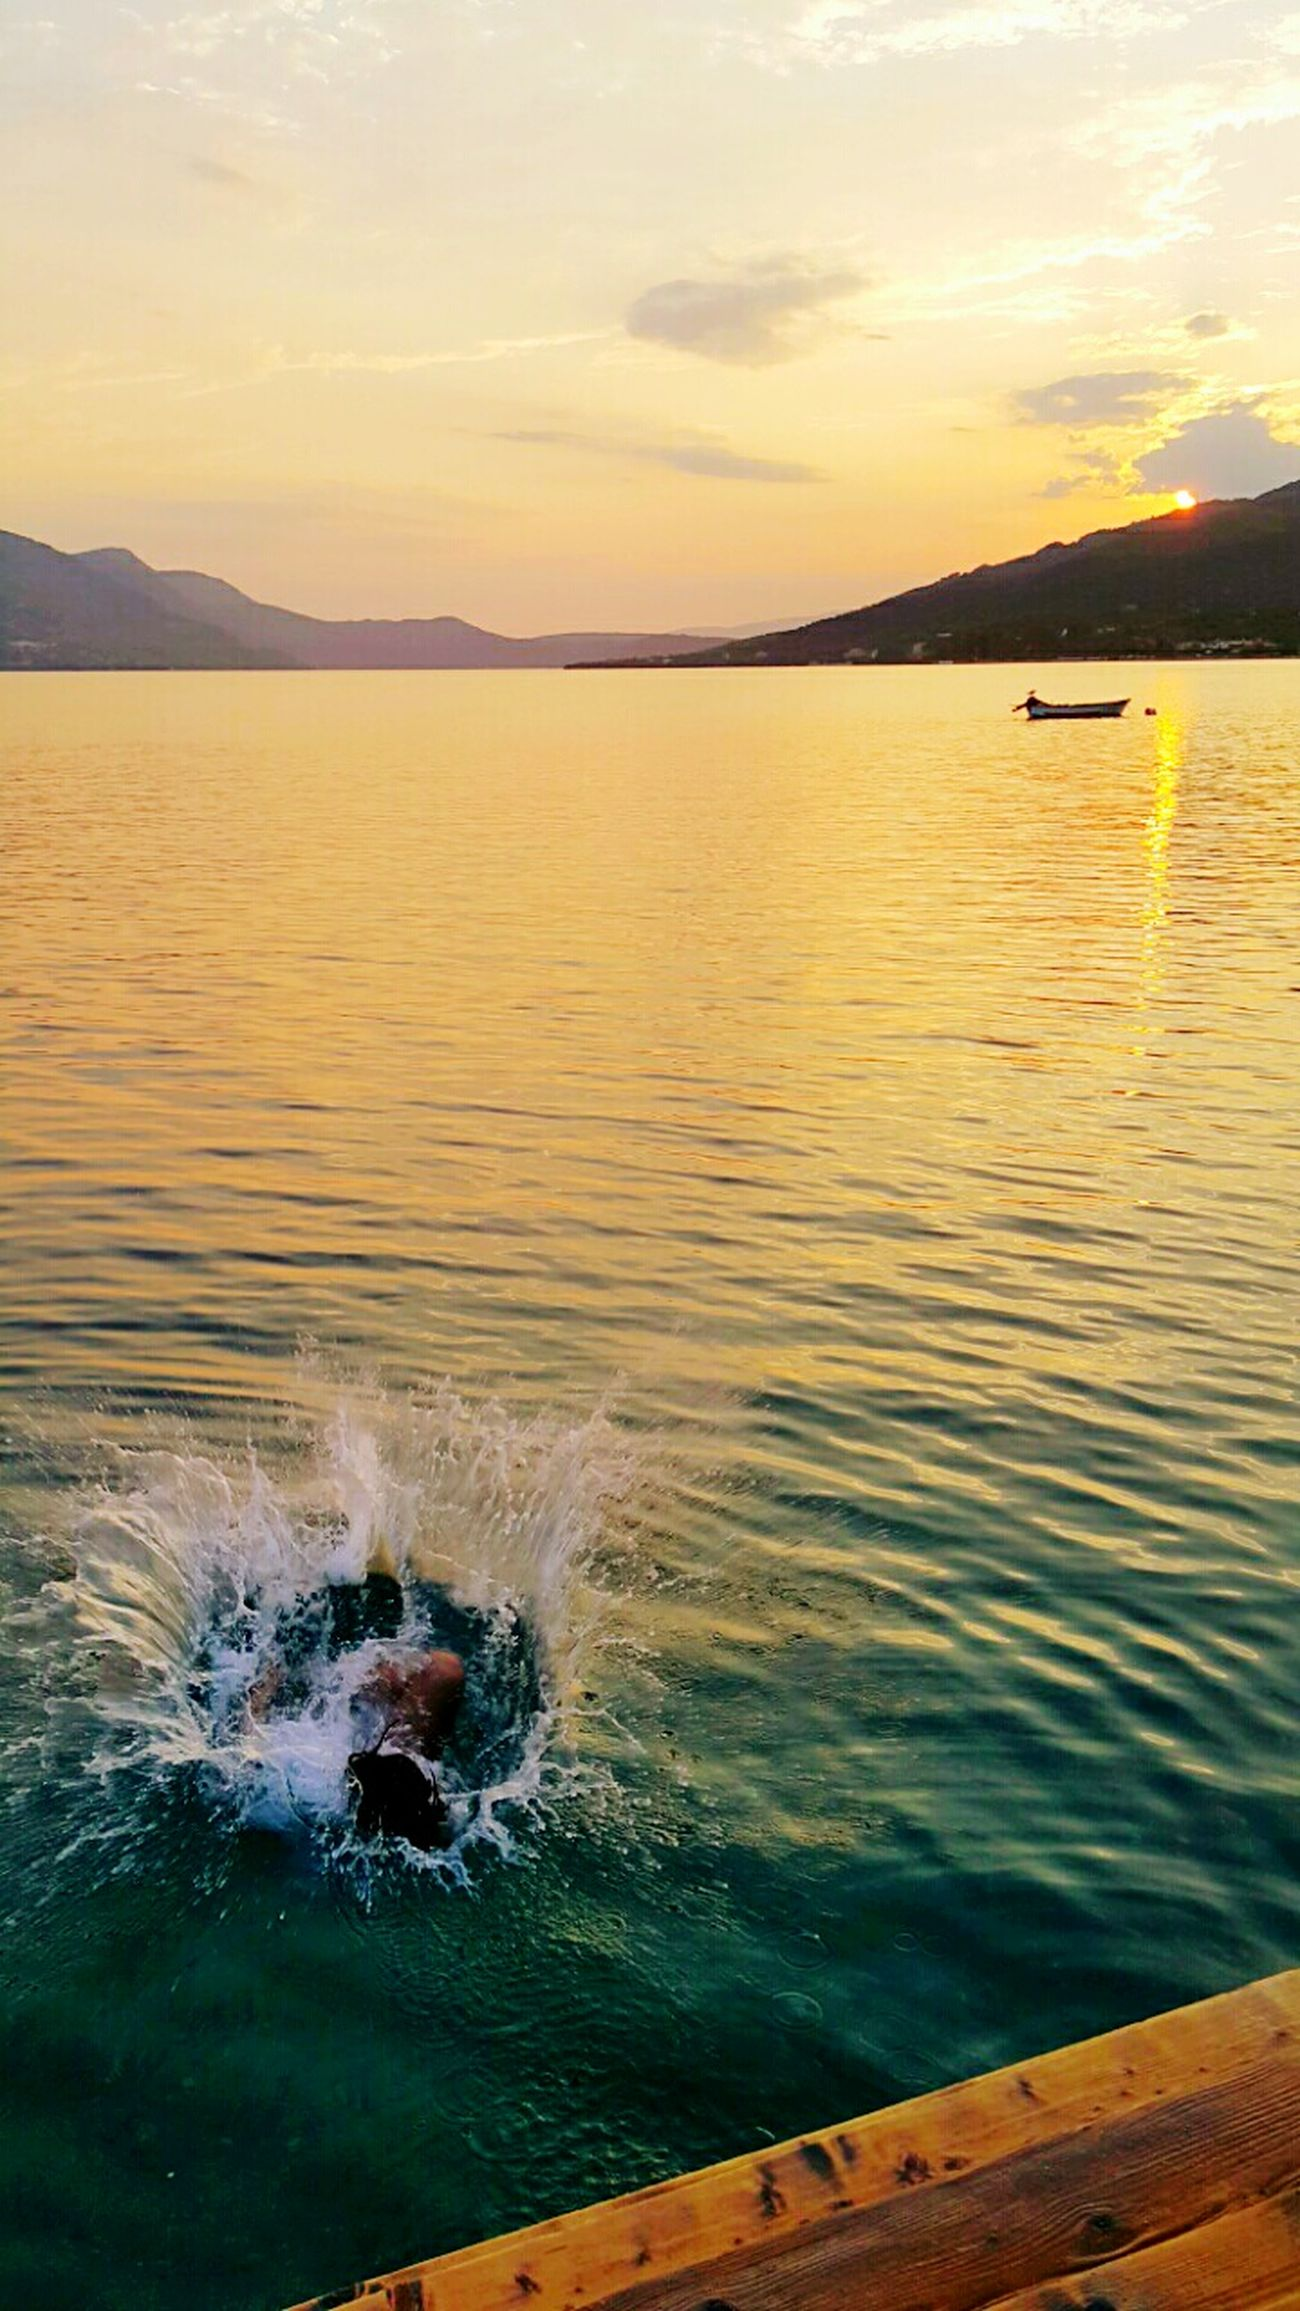 Jump Jumping Boat Boats Water Relaxing Hi! That's Me Enjoying Life Clouds Hanging Out Fresh Likeforlike Like4like Sky Sea And Sky Sea Water Reflections Sunset Clouds And Sky Orange Sky Greece Sea View Fresh AF Waves